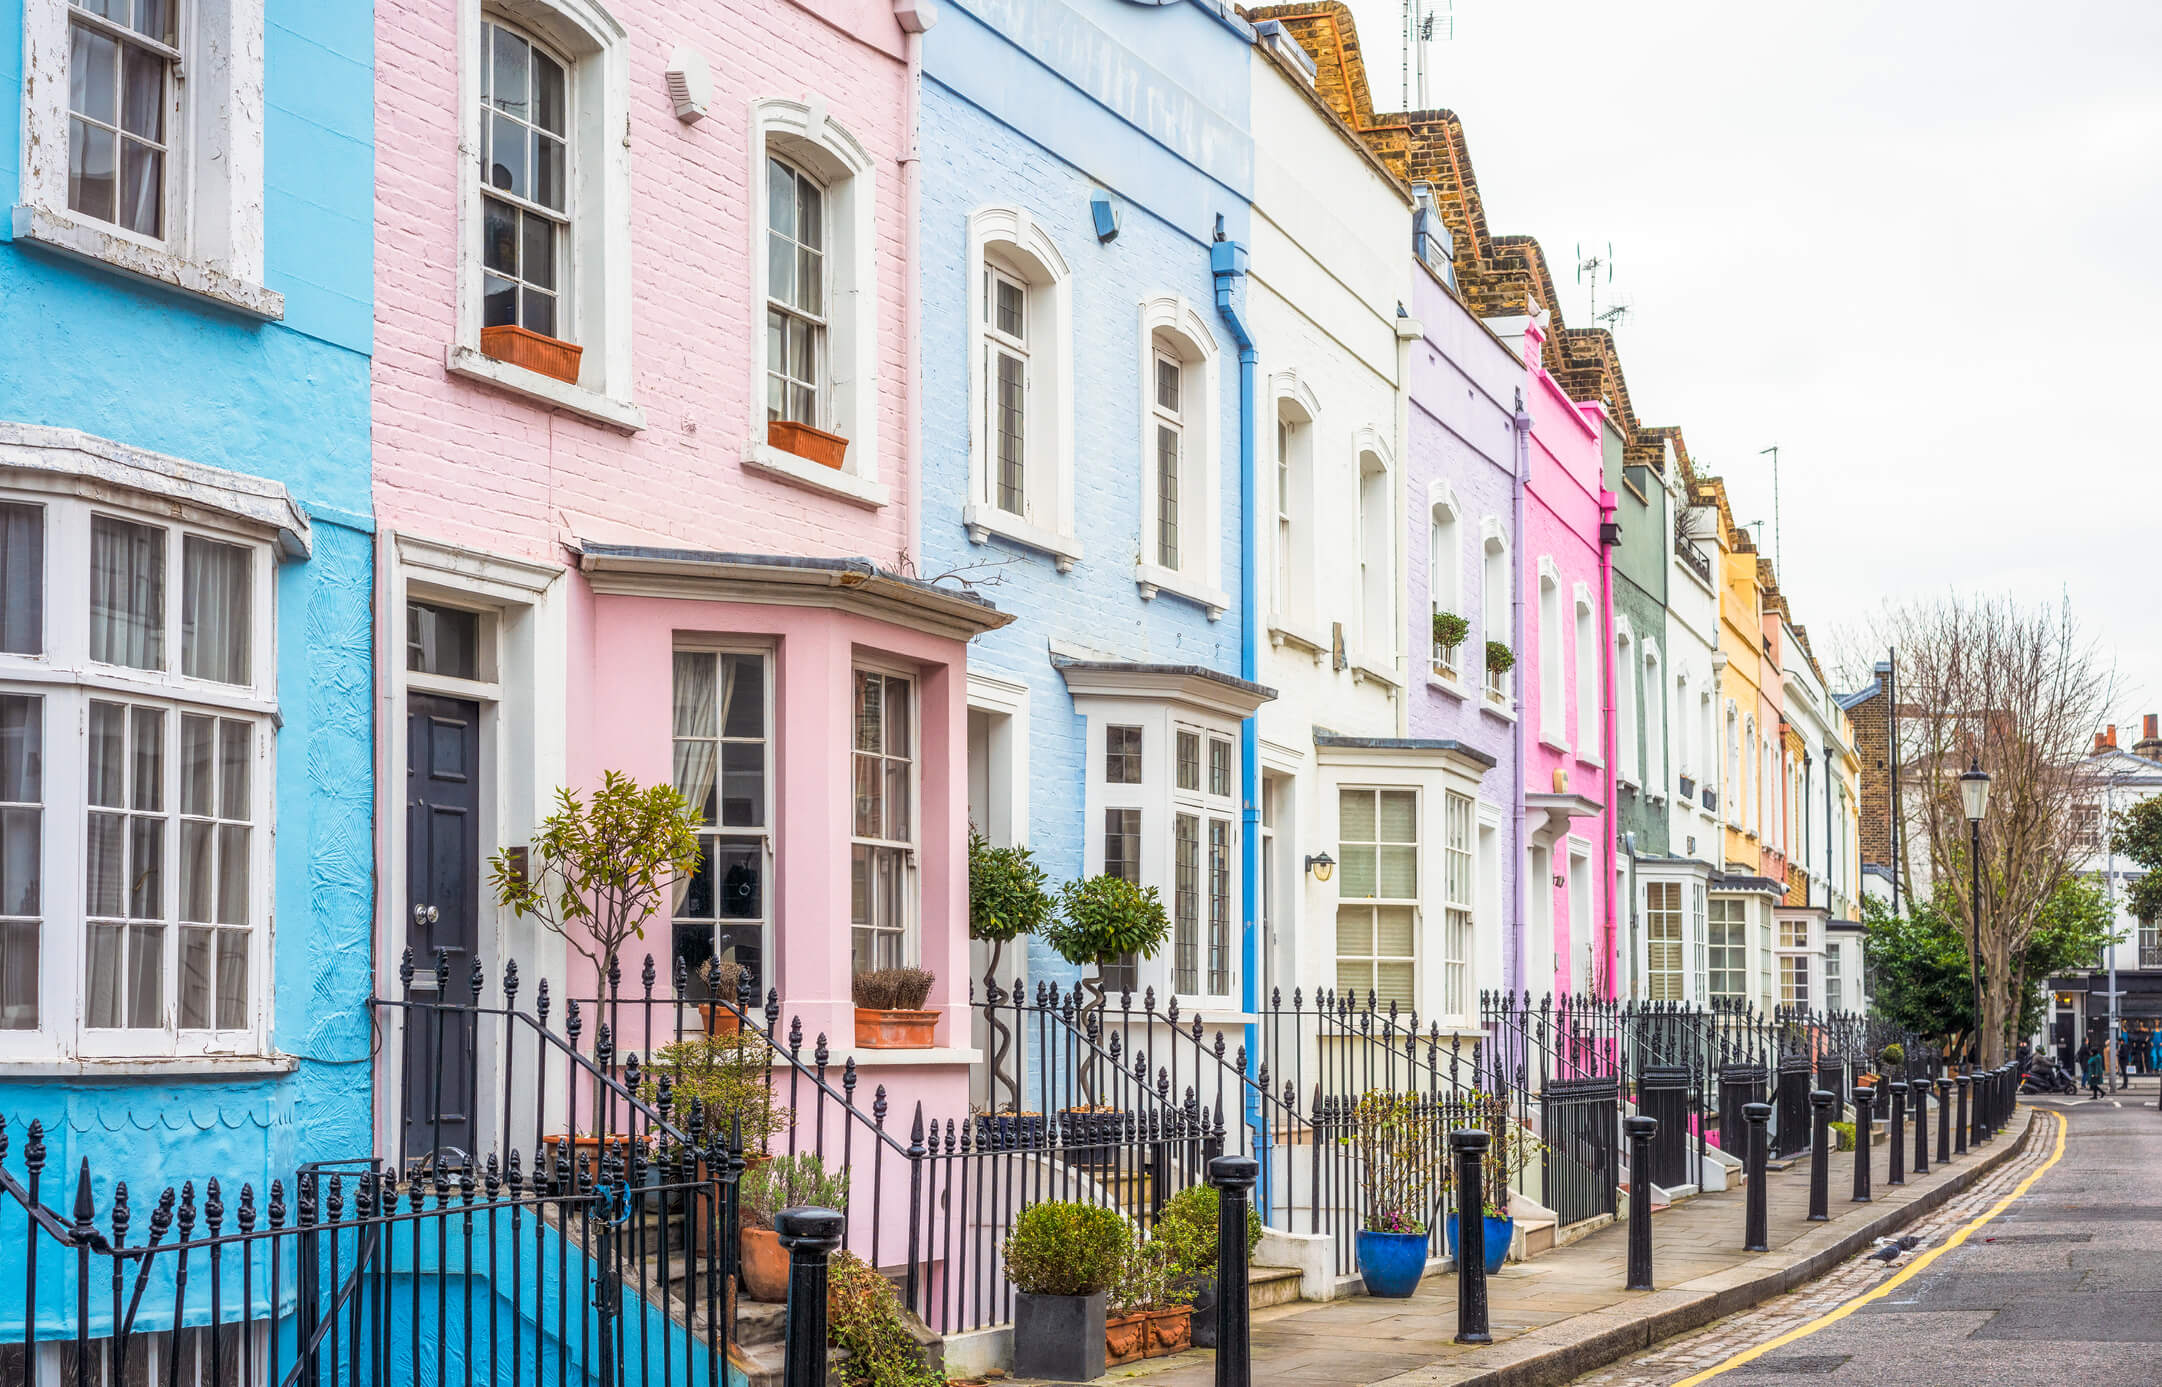 Multi-coloured street of houses in Chelsea,London